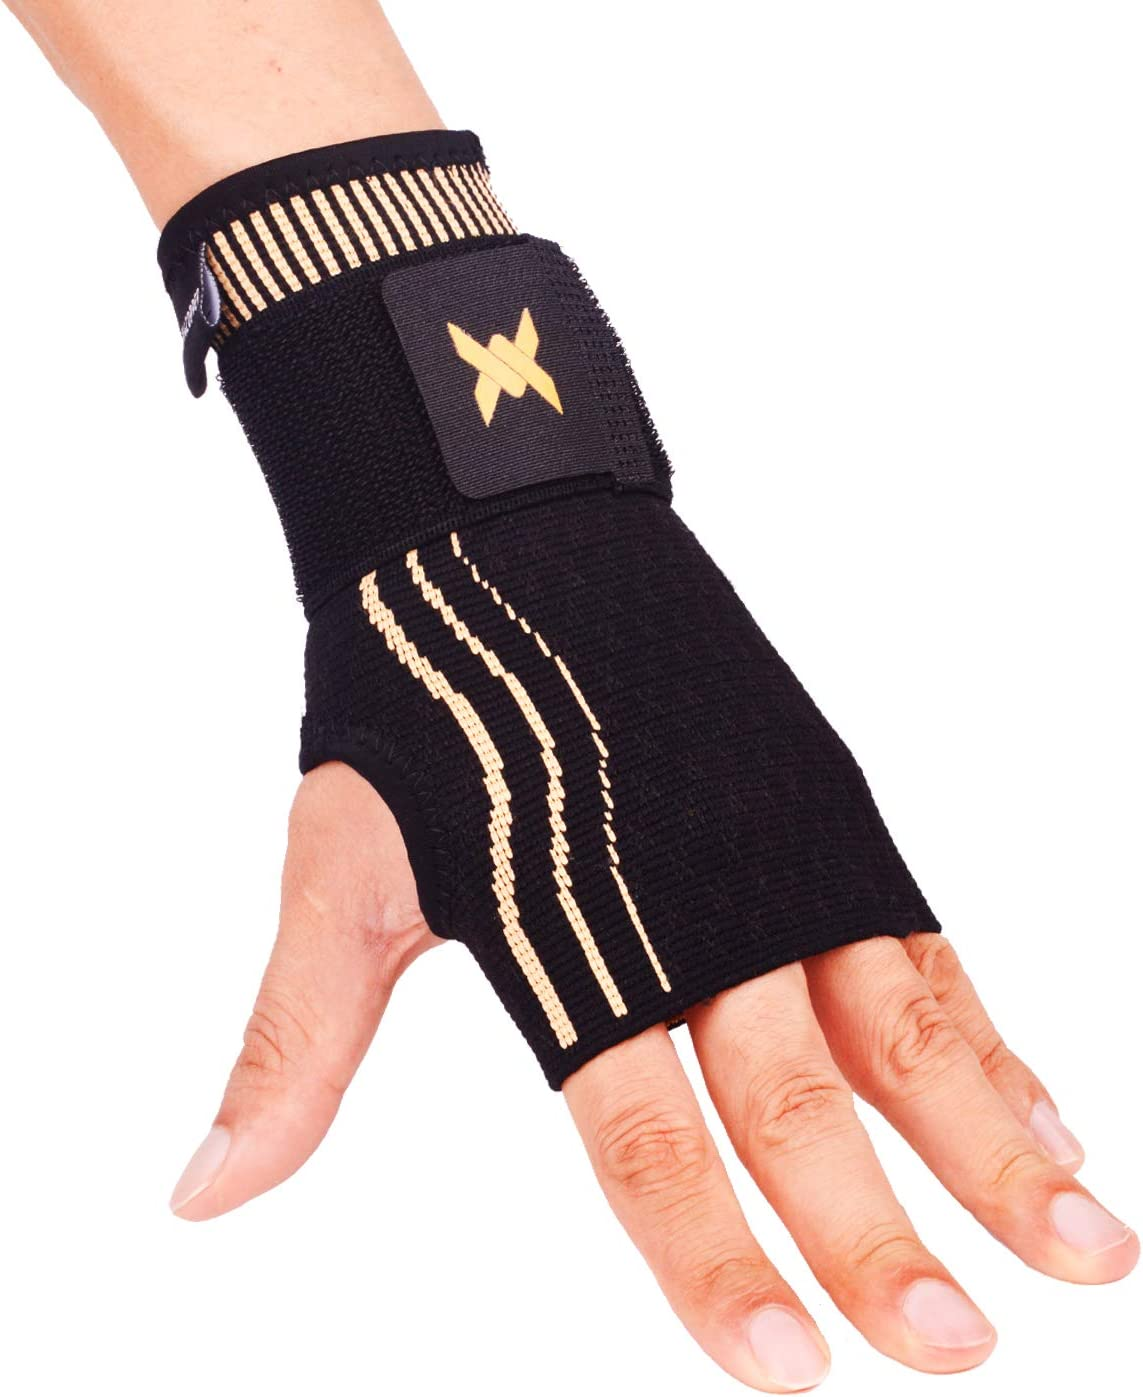 Thx4COPPER Wrist Sleeve with Adjustable Strap for Extra Support -Copper Infused Compression Wrist Brace-RELIEF For Carpal Tunnel, RSI, Tendonitis, Arthritis, Wrist Sprains and Fatigue-SINGLE-M